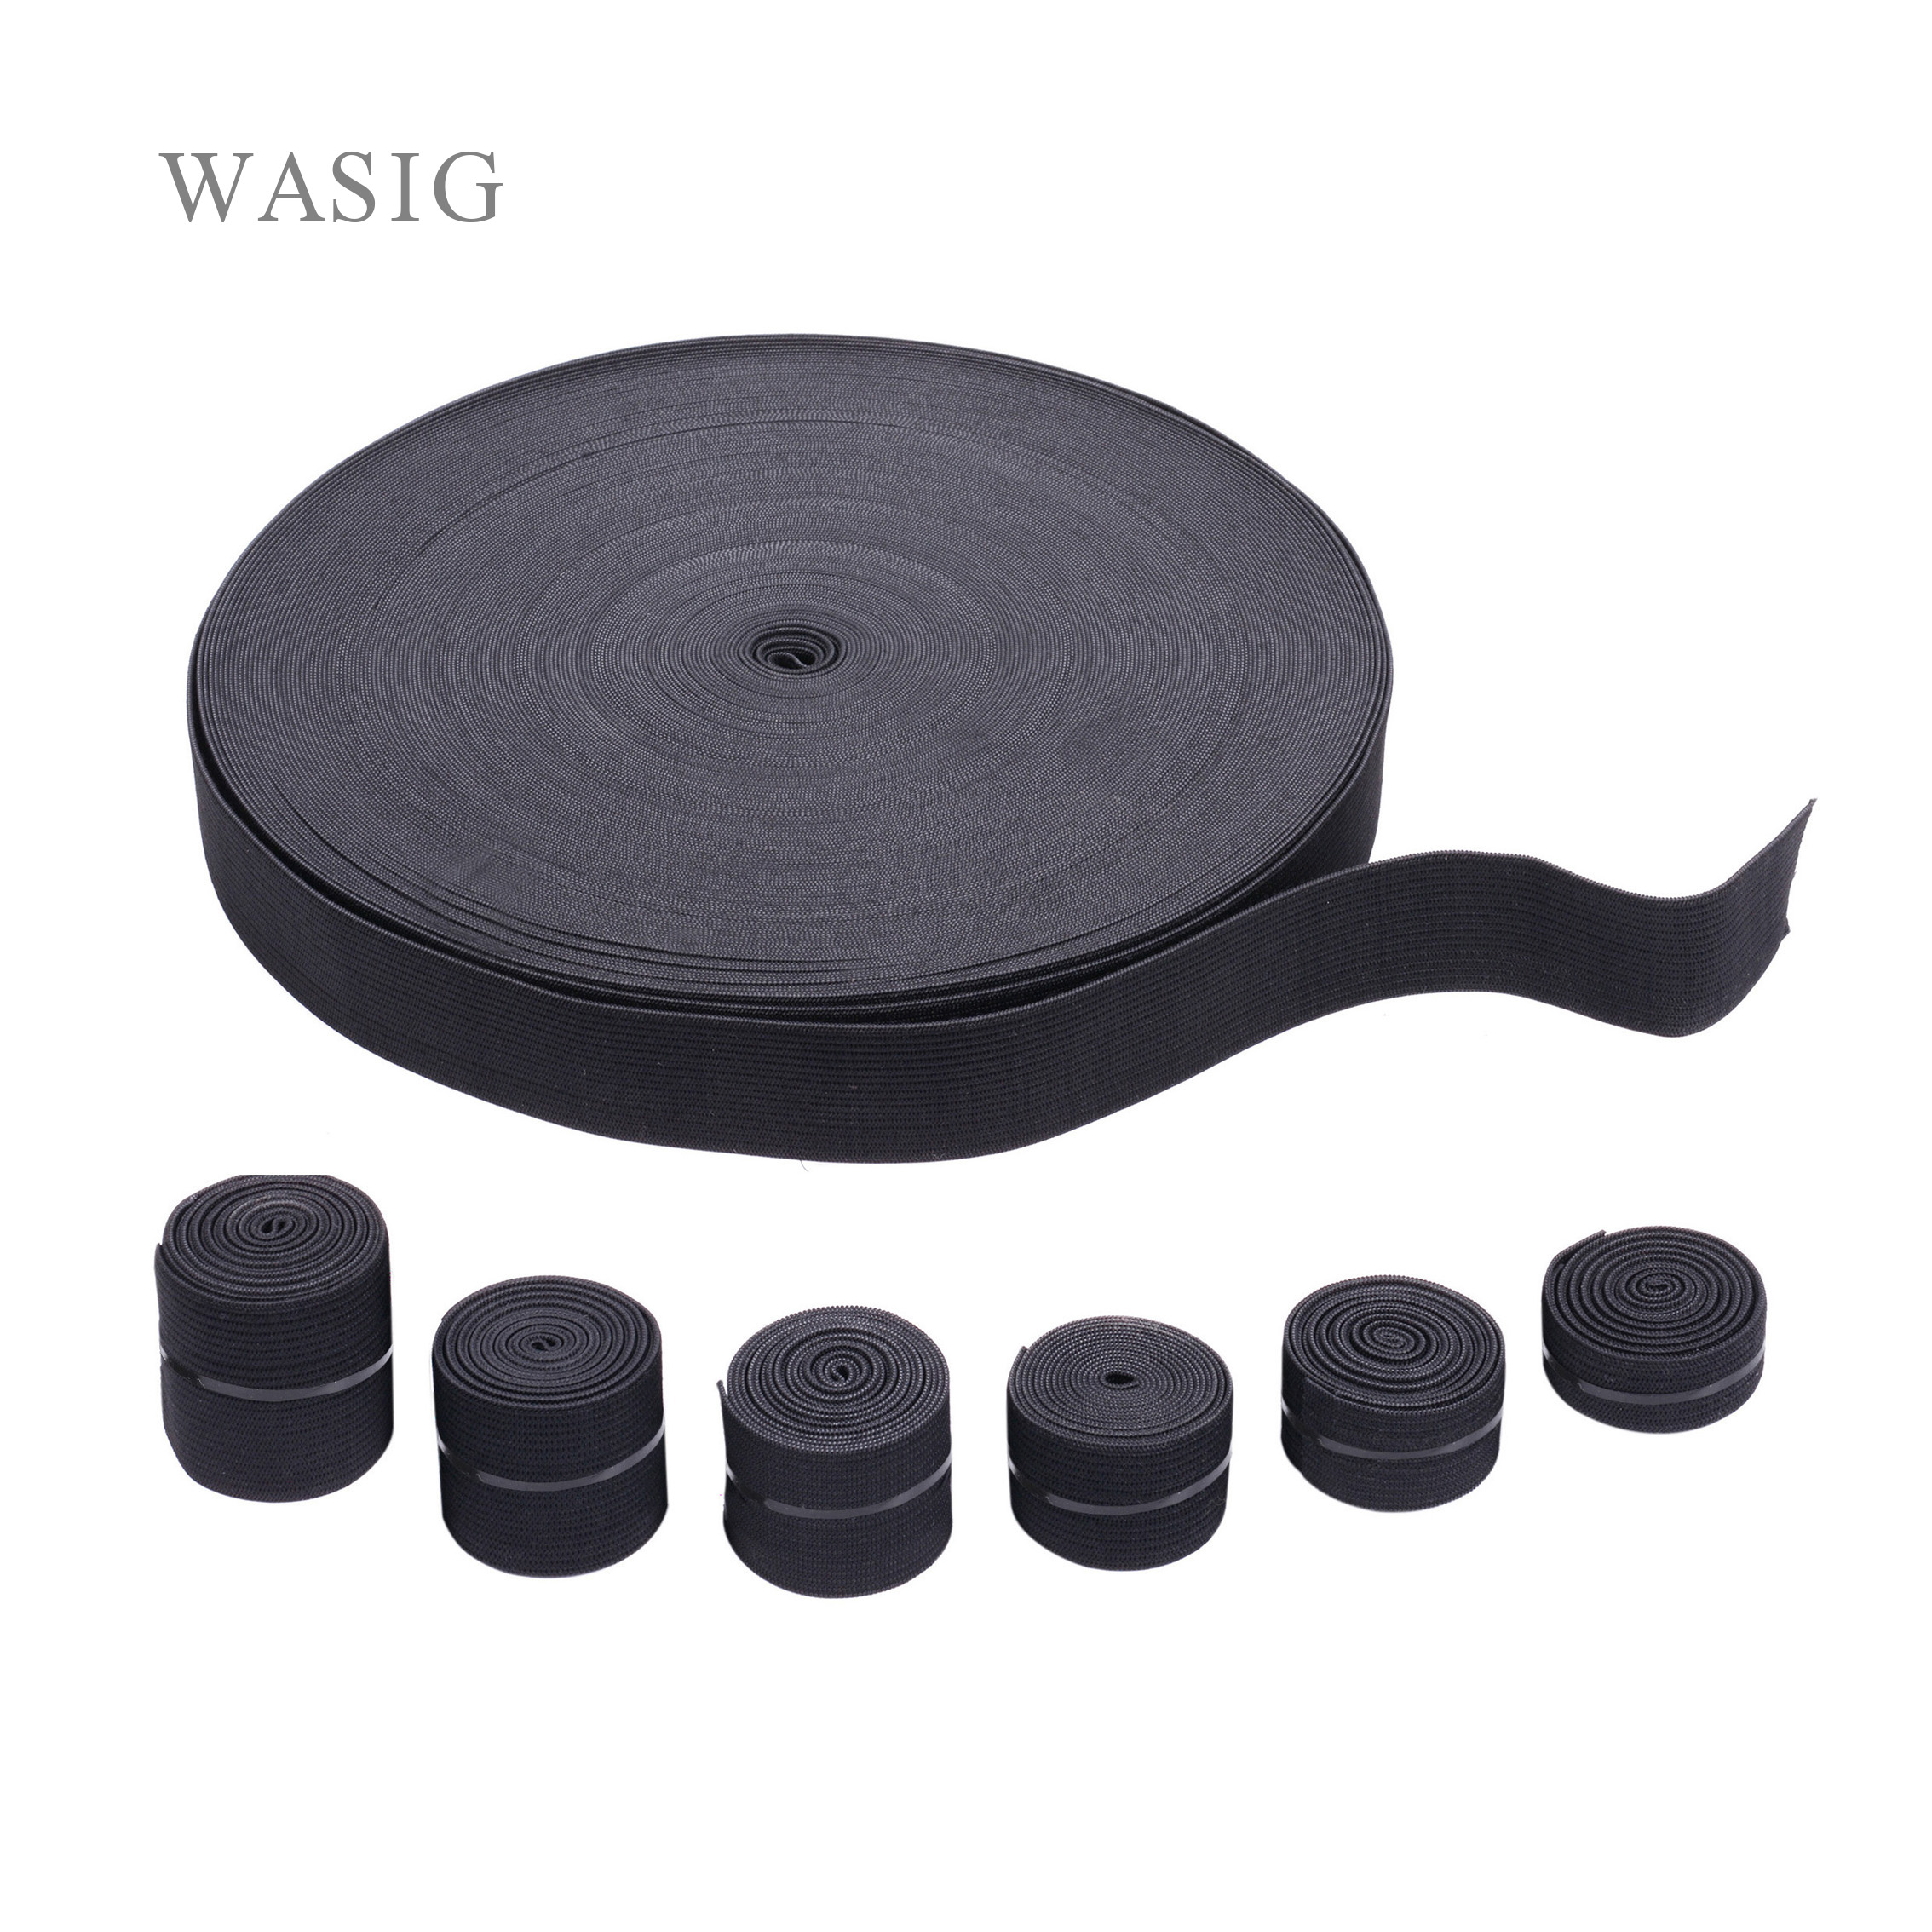 1.1 Yard Wig Elastic Band 15 25 35 40Mm Wig Band For Hairnet Adjustable Elastic Band For Wig Cap